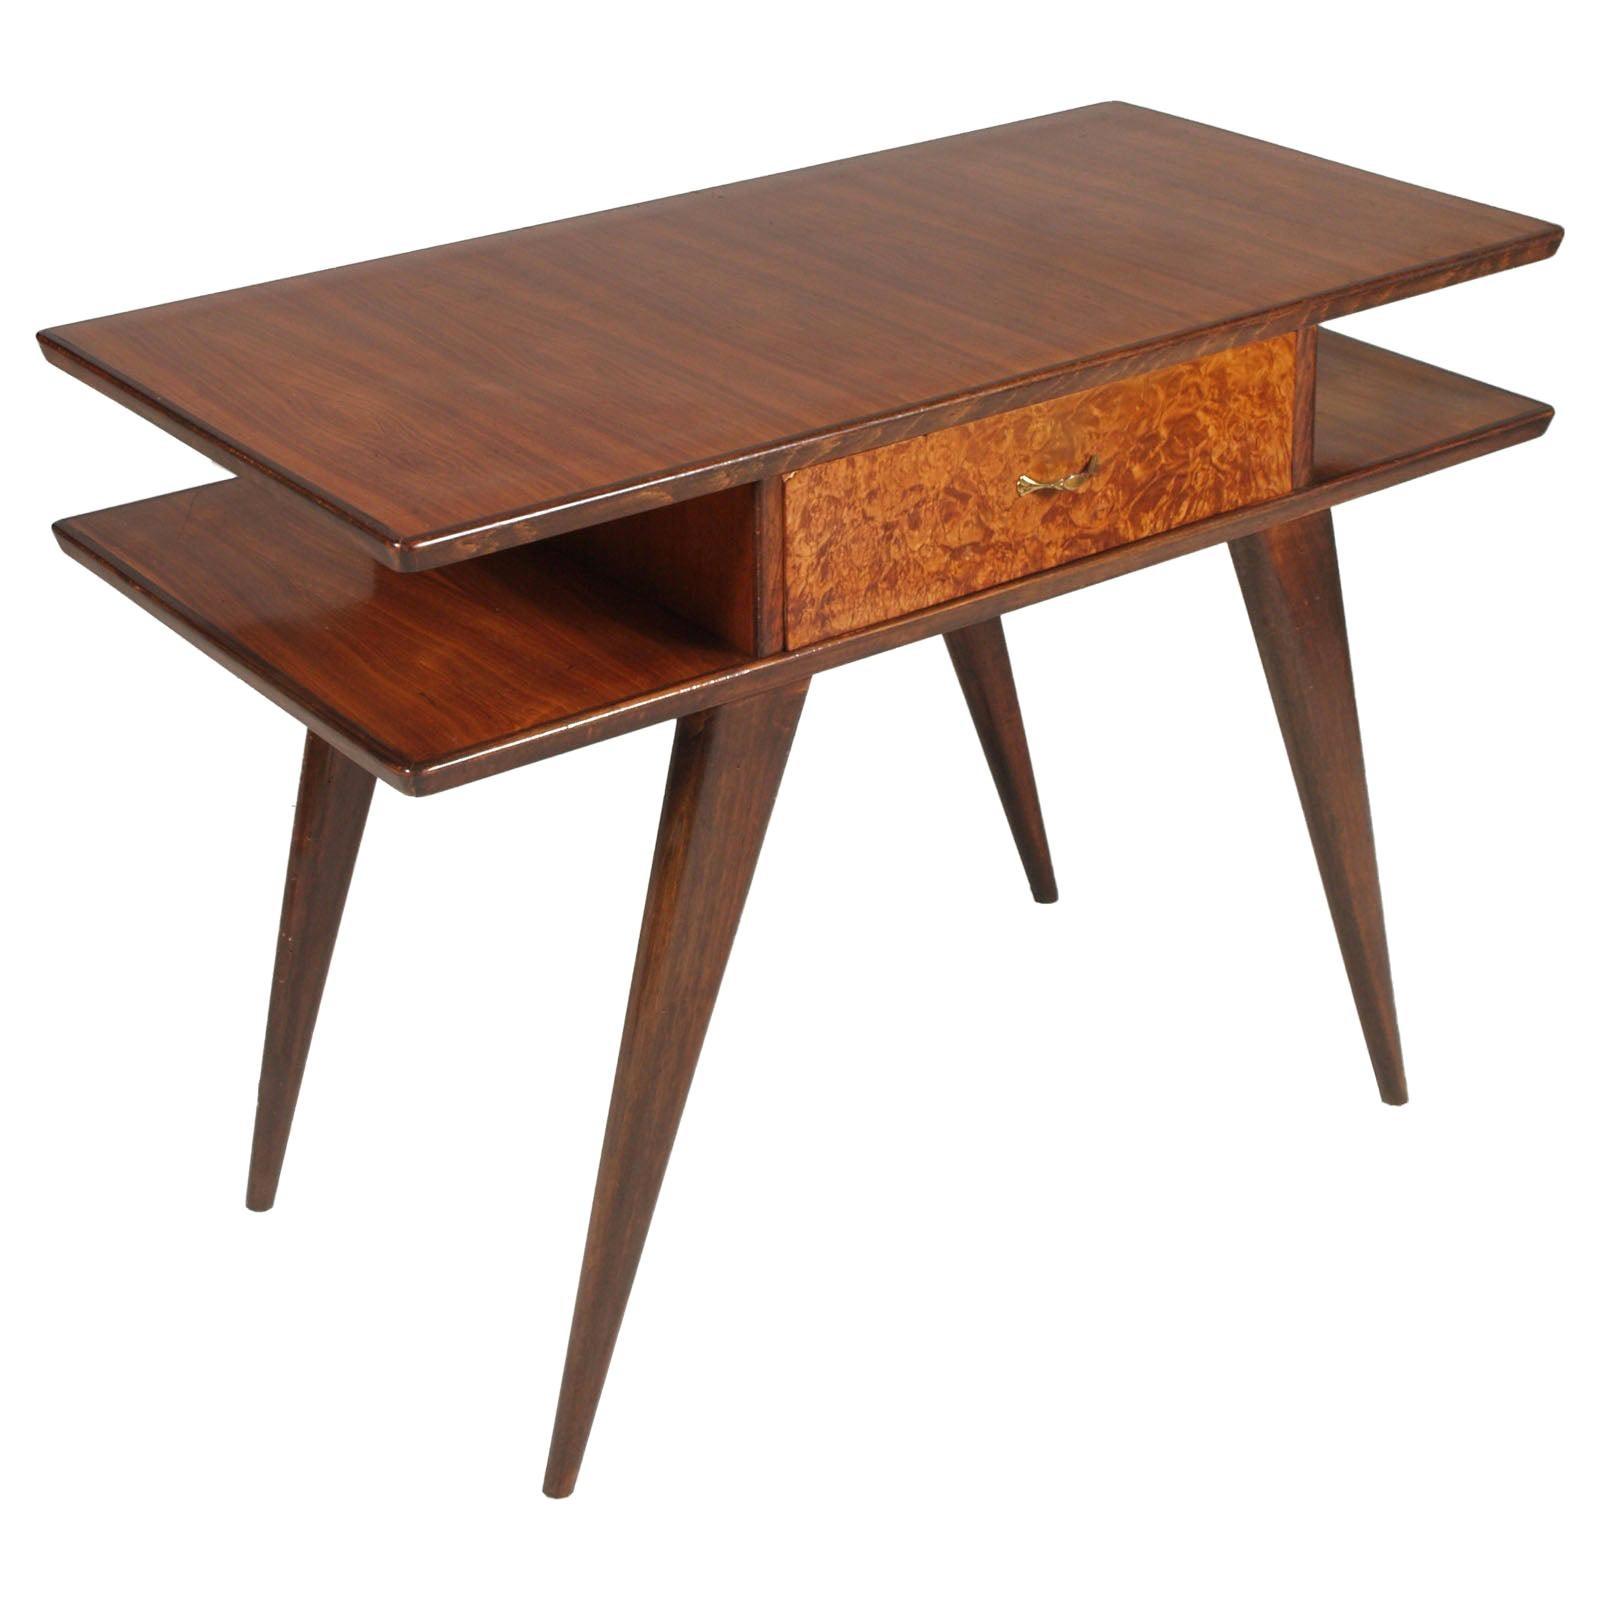 1940s Writing Desk by Ico Parisi for Brugnoli Mobili, Cantu, Wax-Polished